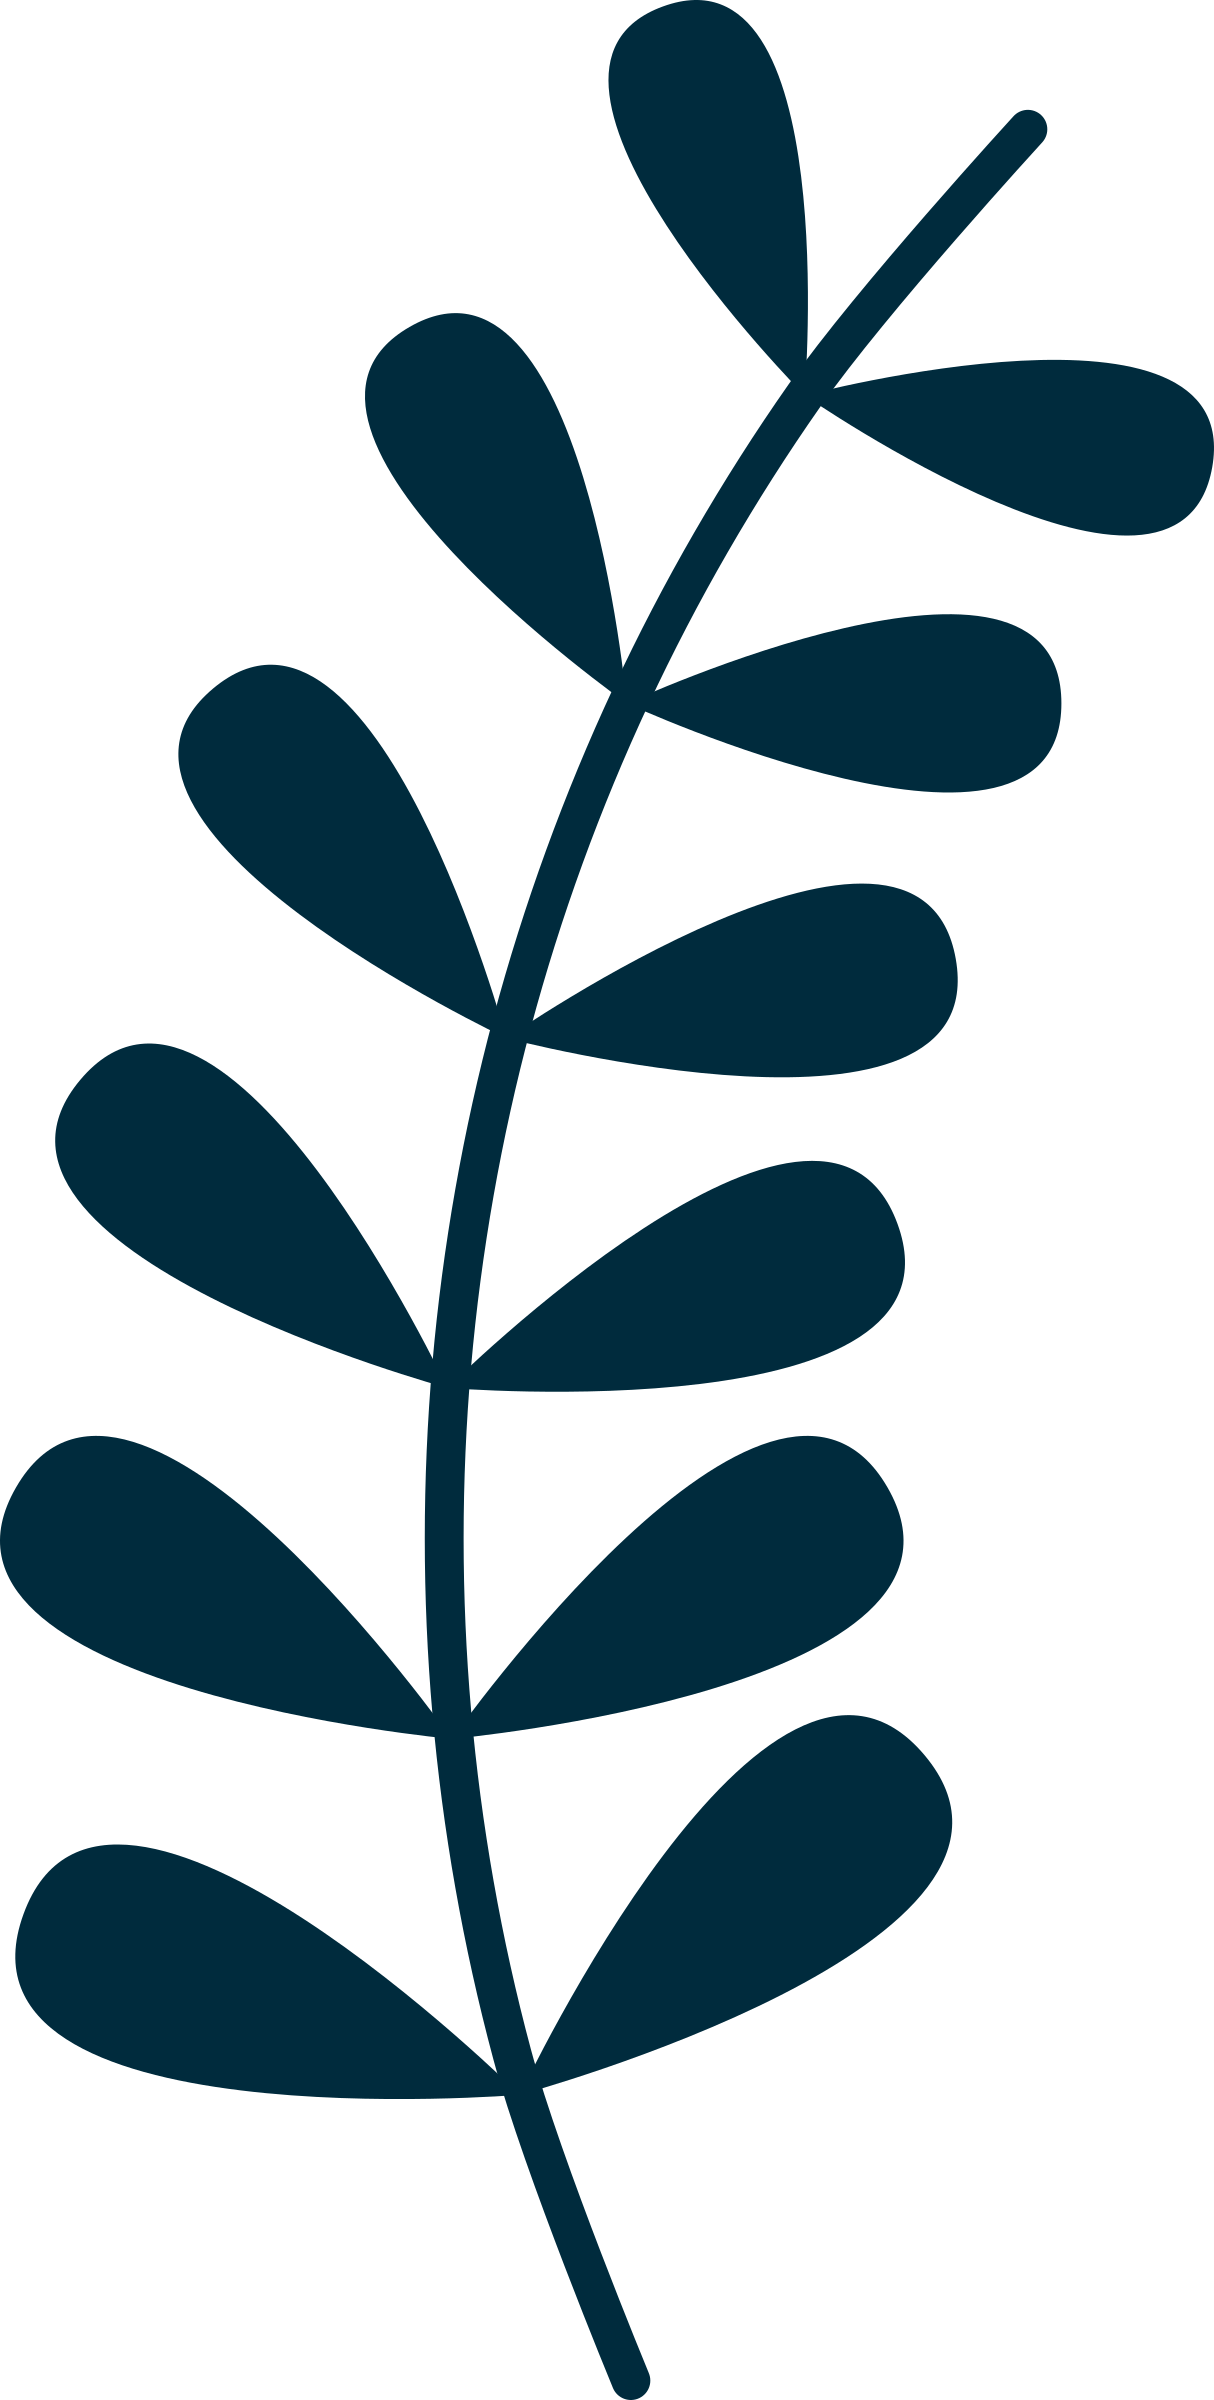 Clipart trees vine. Simple big image png